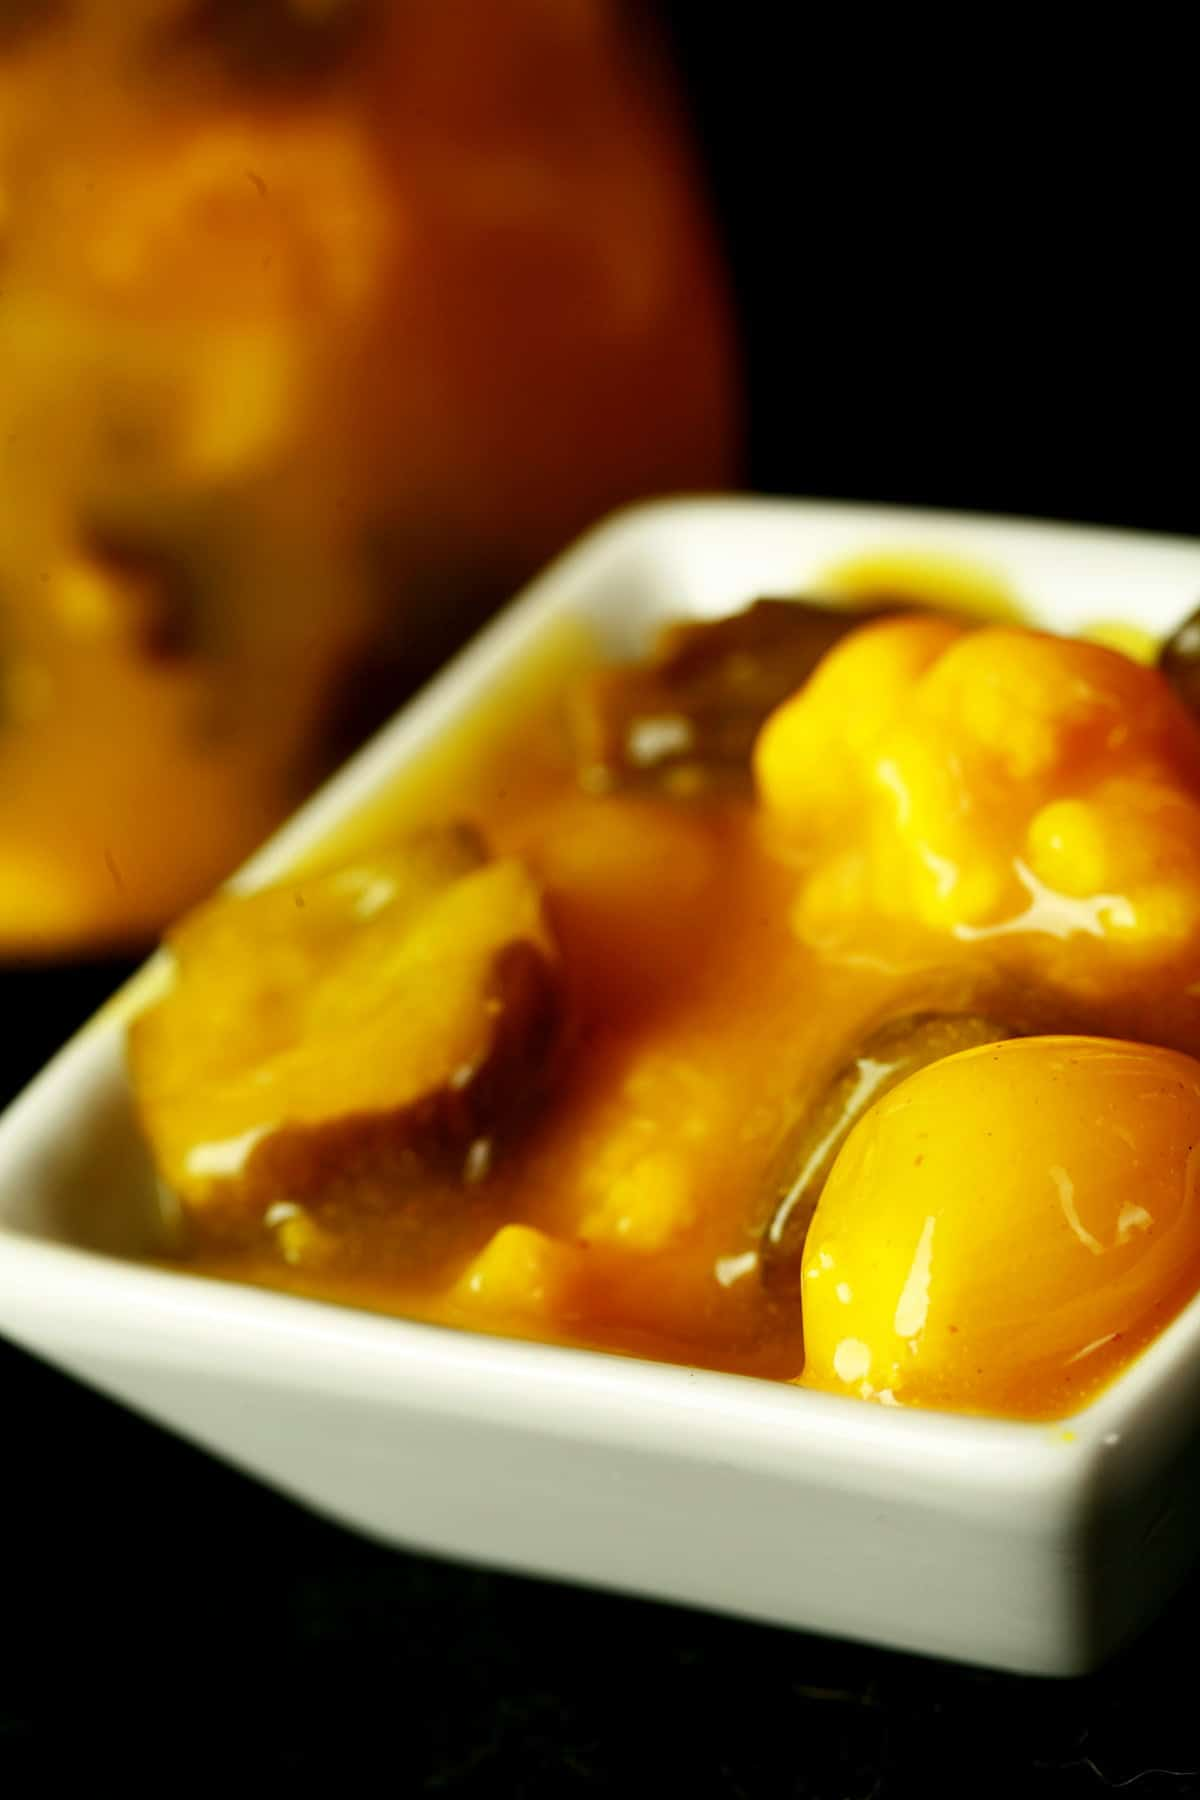 A small bowl of bright yellow sweet mustard pickles, in a thick sauce.